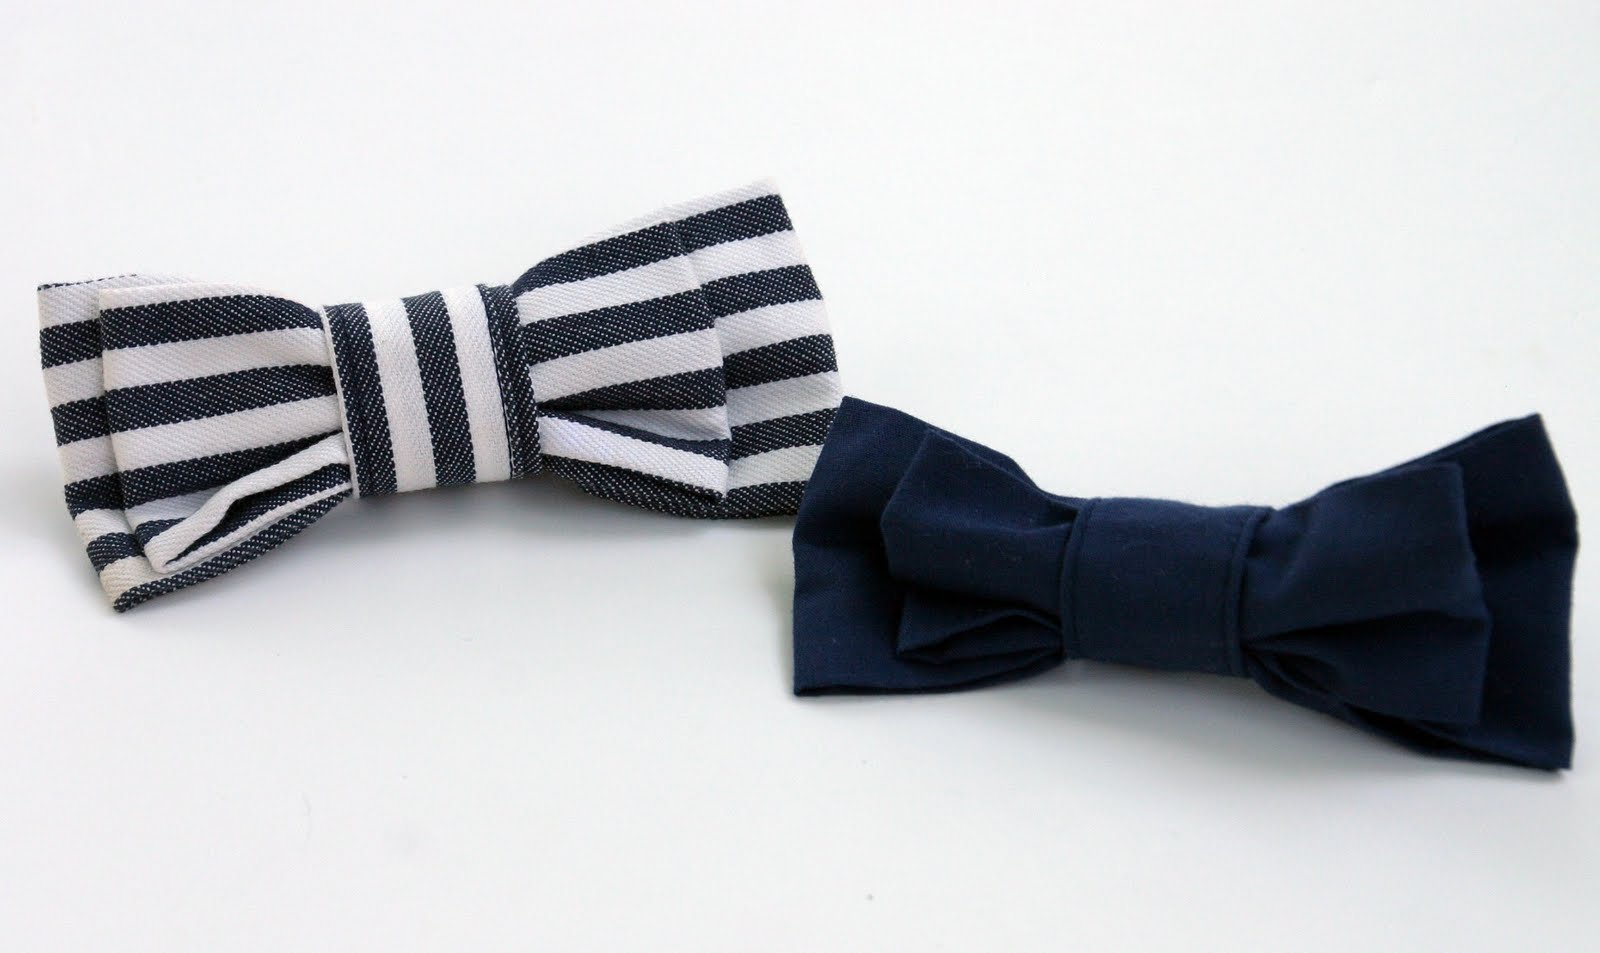 The Boys Looked Super Geekchic In Their Little Bow Ties… Ahhh Little Men  Going To Their First Wedding!